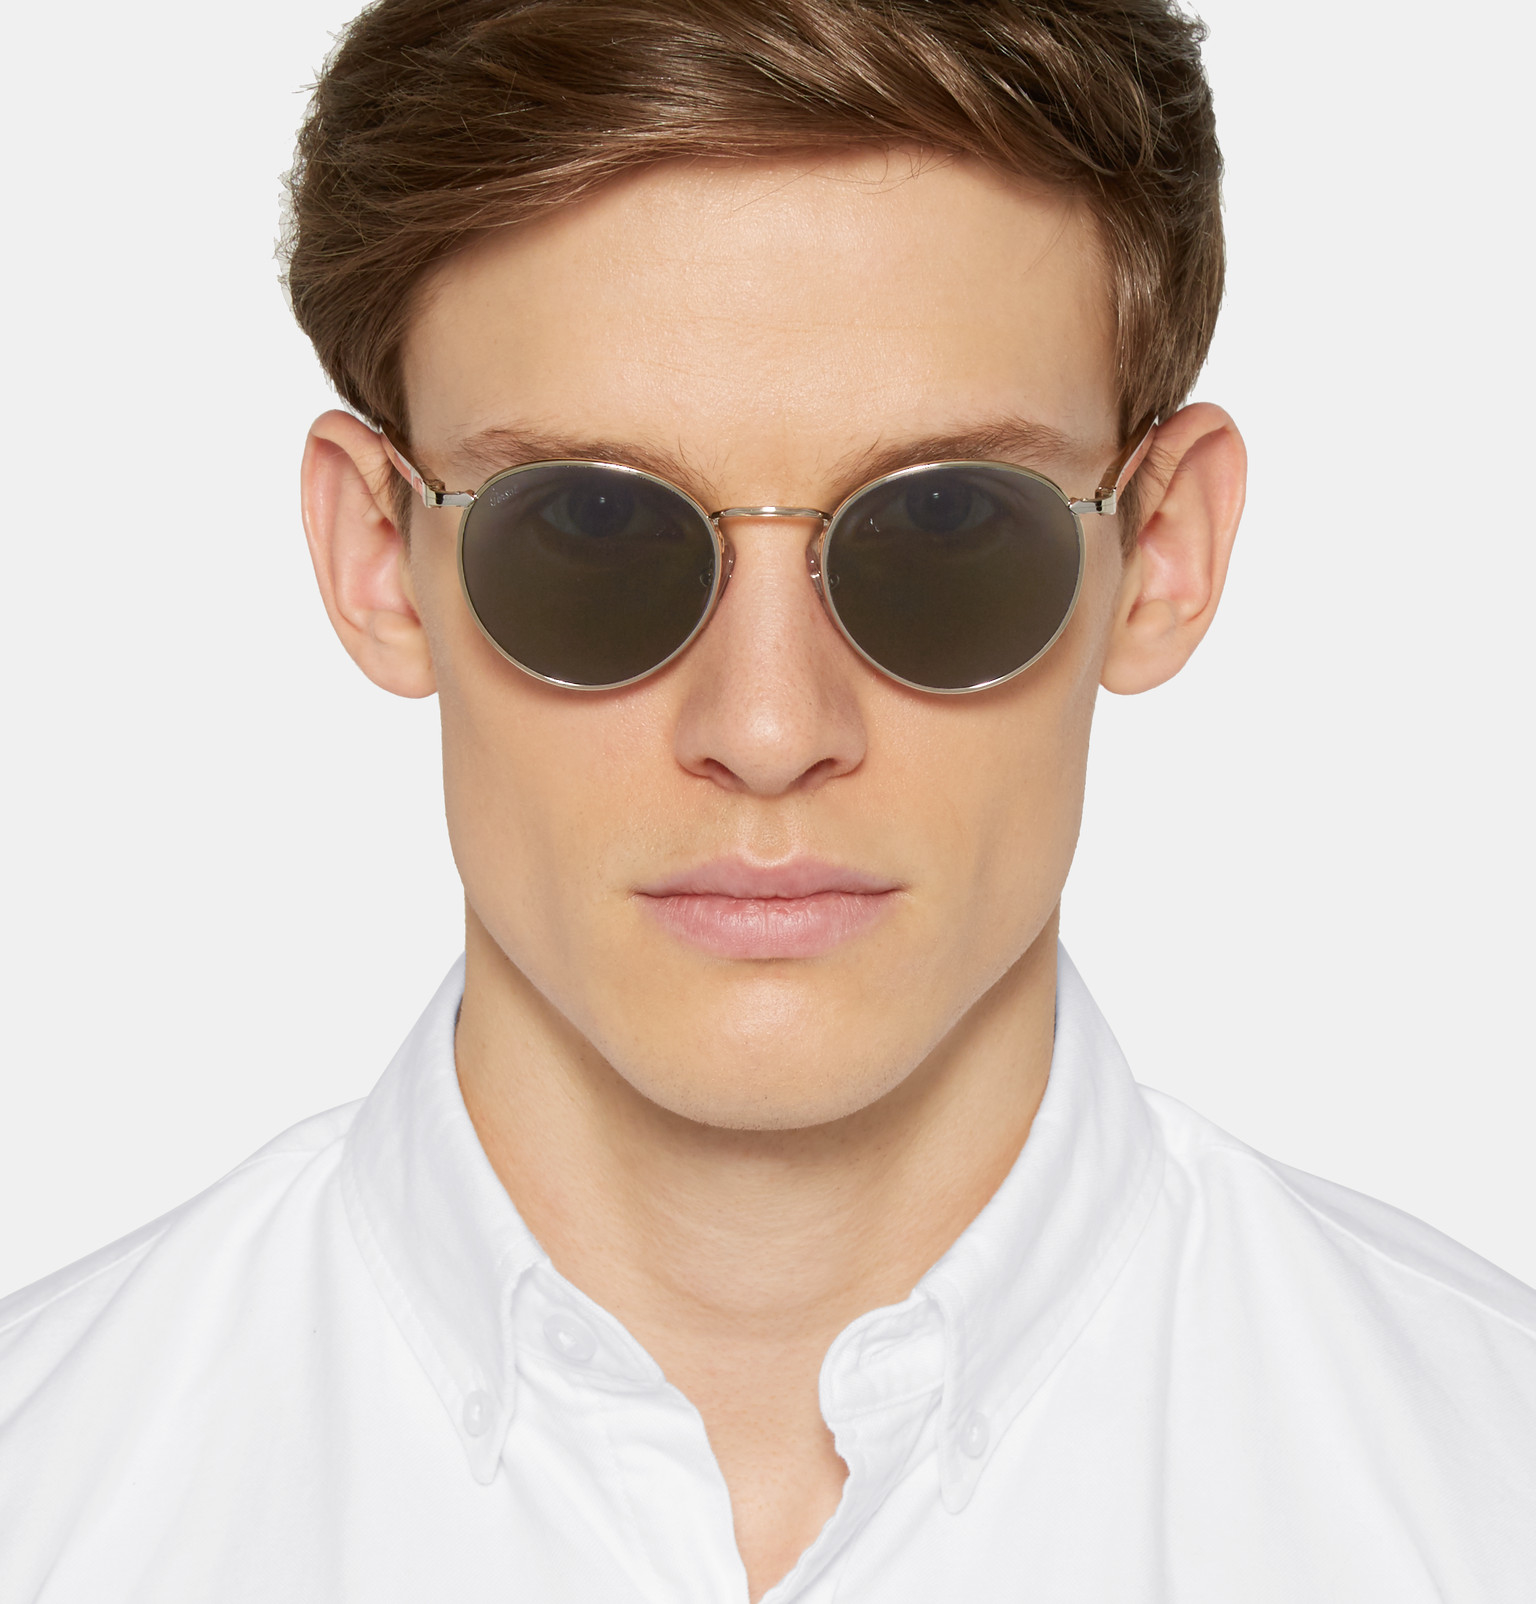 In Frame Men Round Persol Metallic Tone Lyst For Sunglasses Silver SxXSgUw